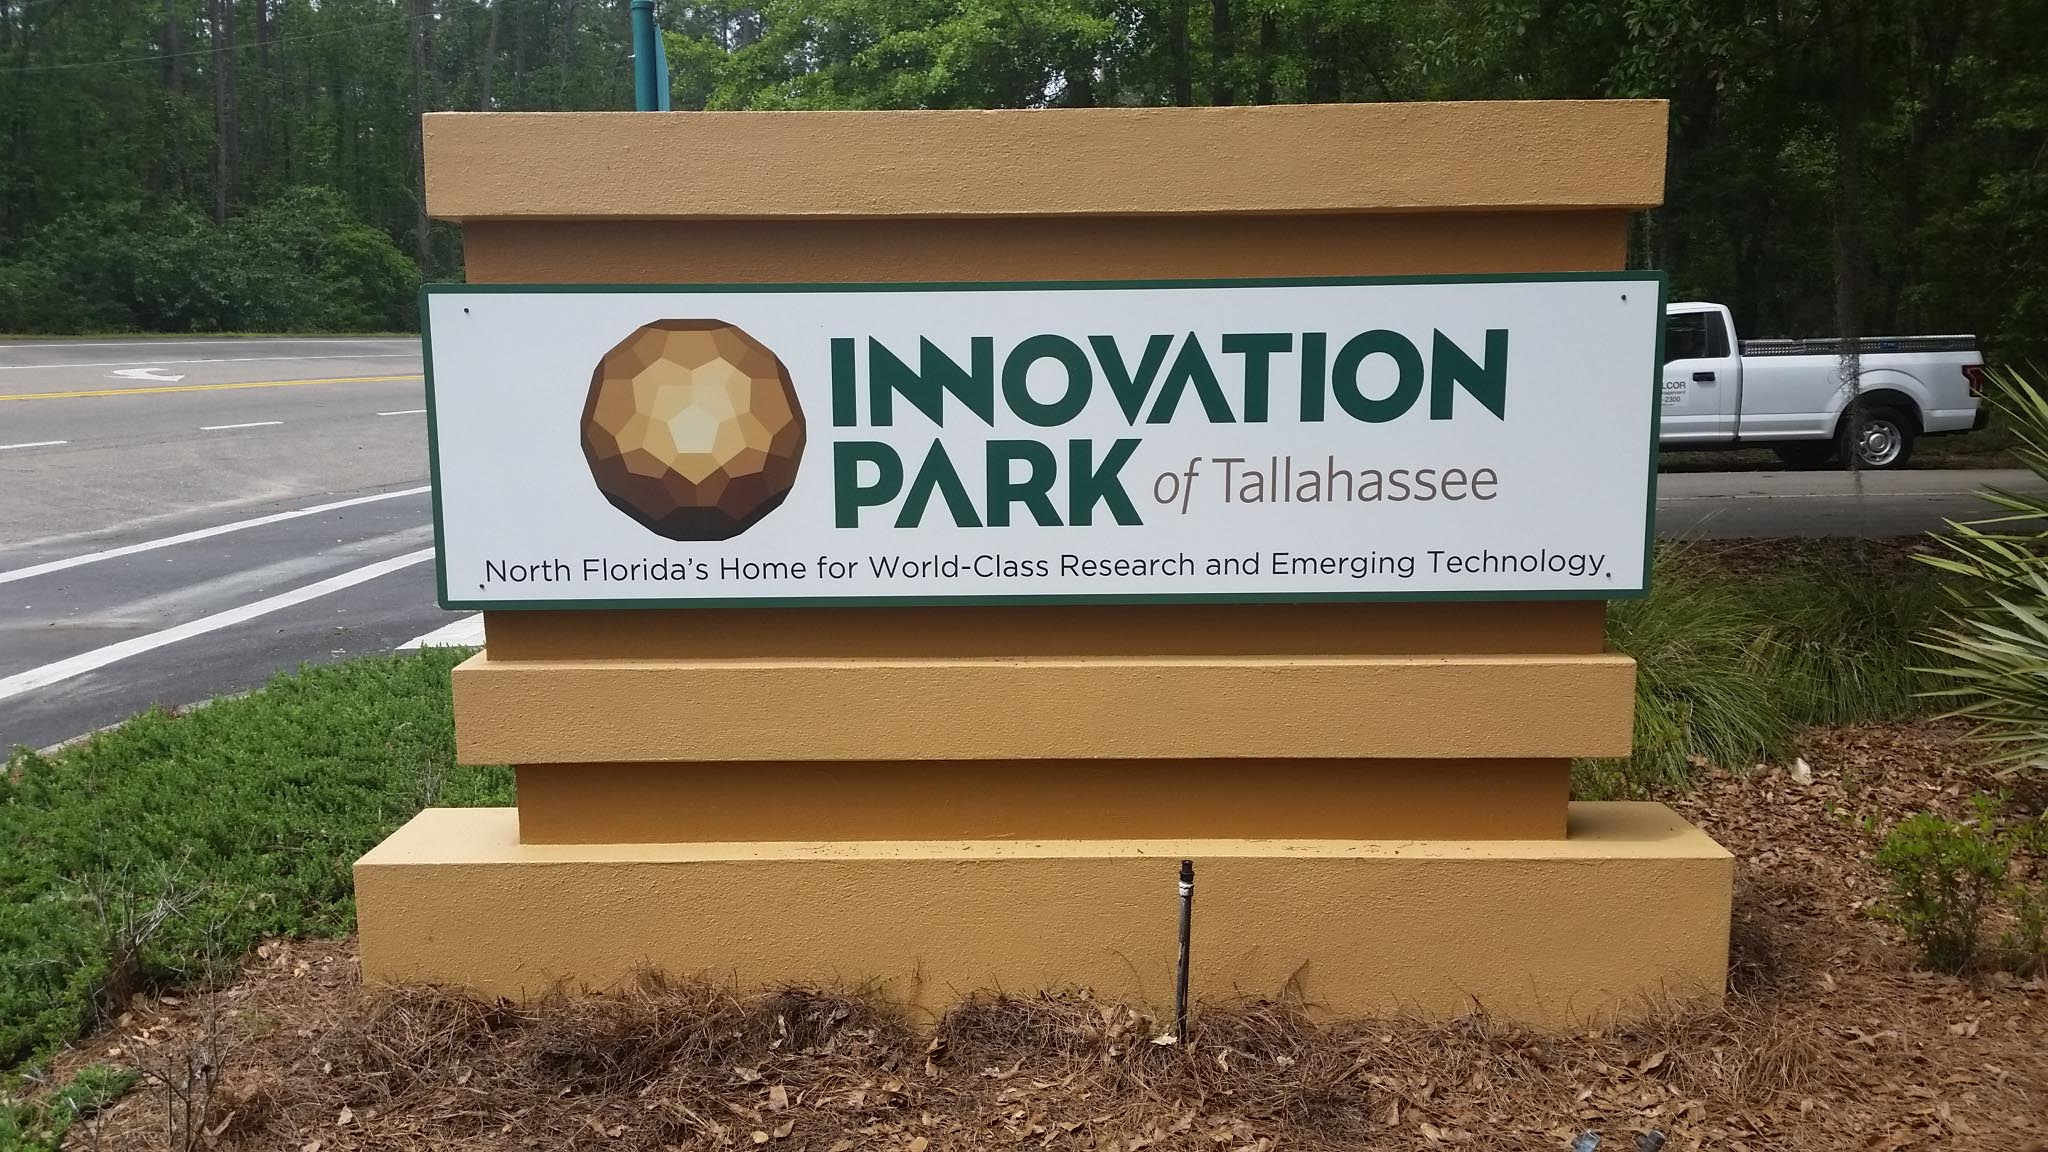 New signs at Innovation Park of Tallahassee